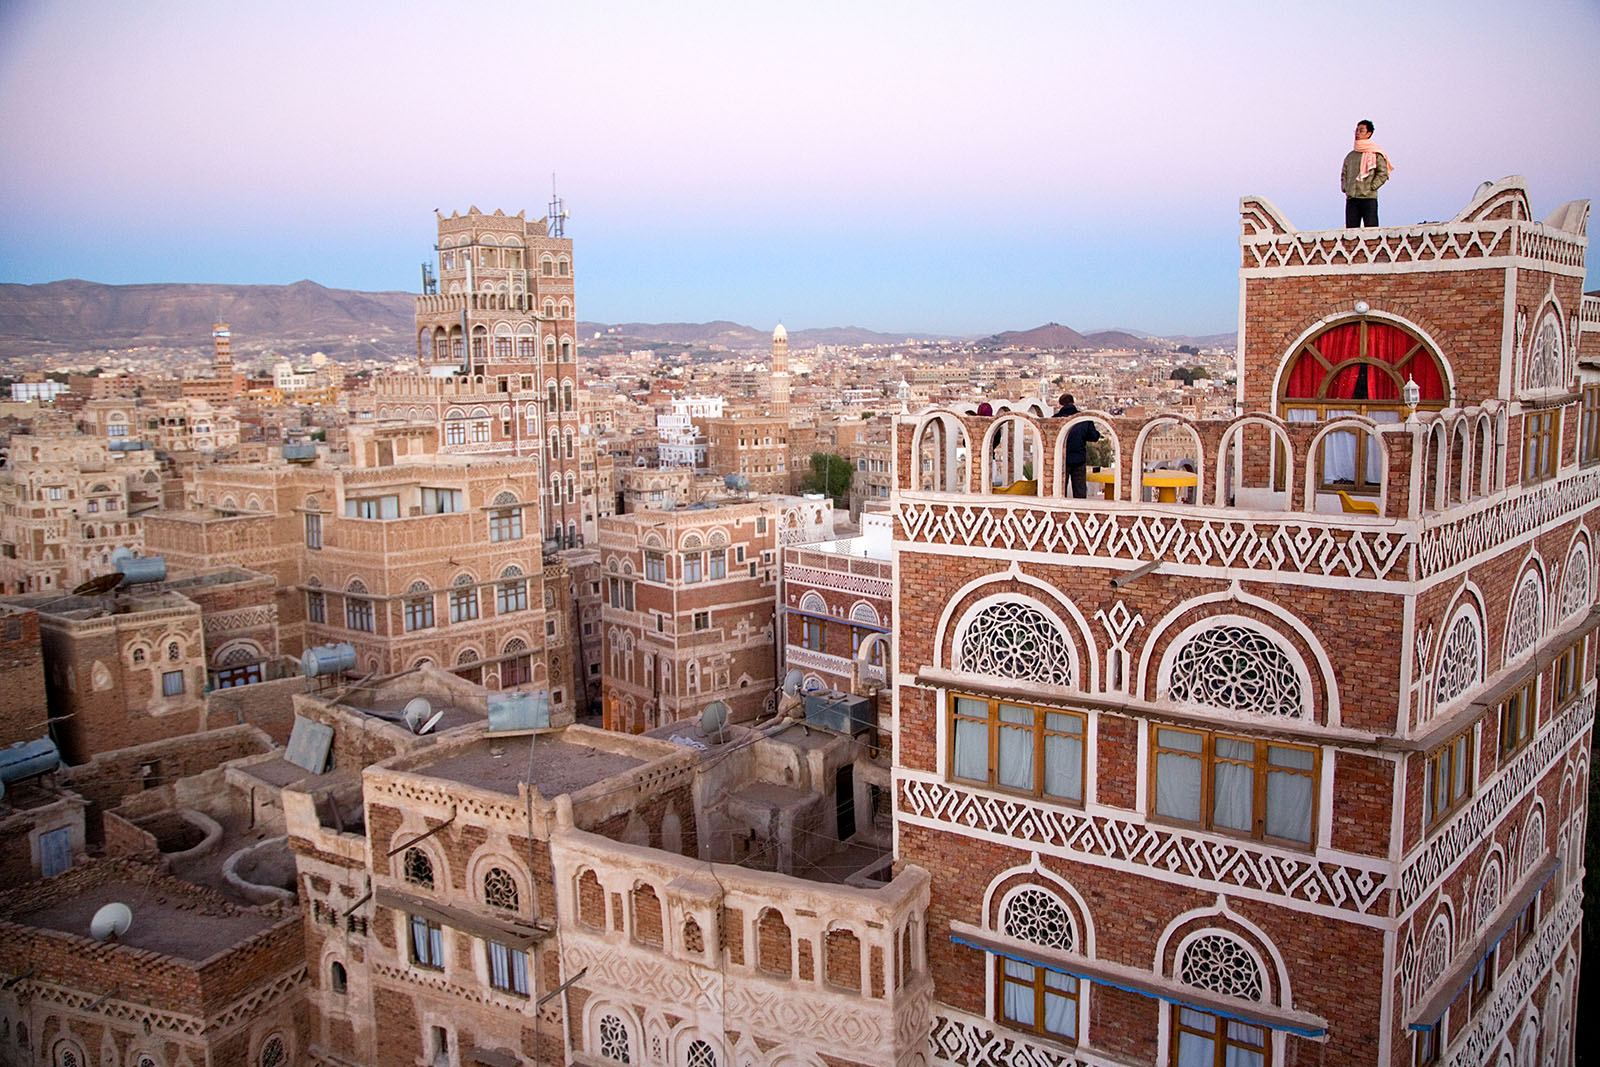 arabia middle east yemen Sanaa old city architecture